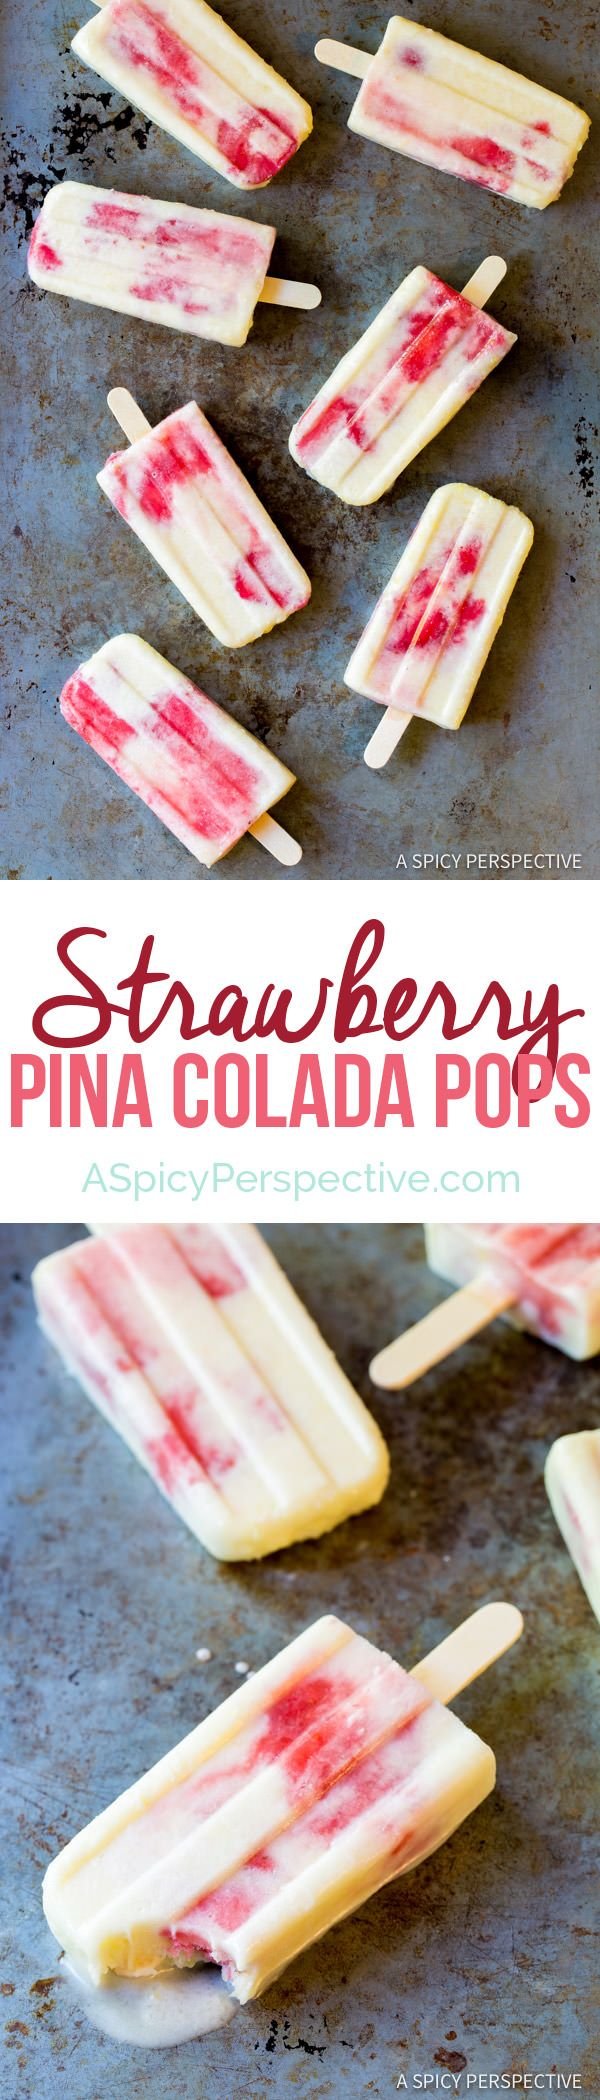 4-Ingredient Strawberry Pina Colada Popsicles http://www.aspicyperspective.com/strawberry-pina-colada-popsicles/2